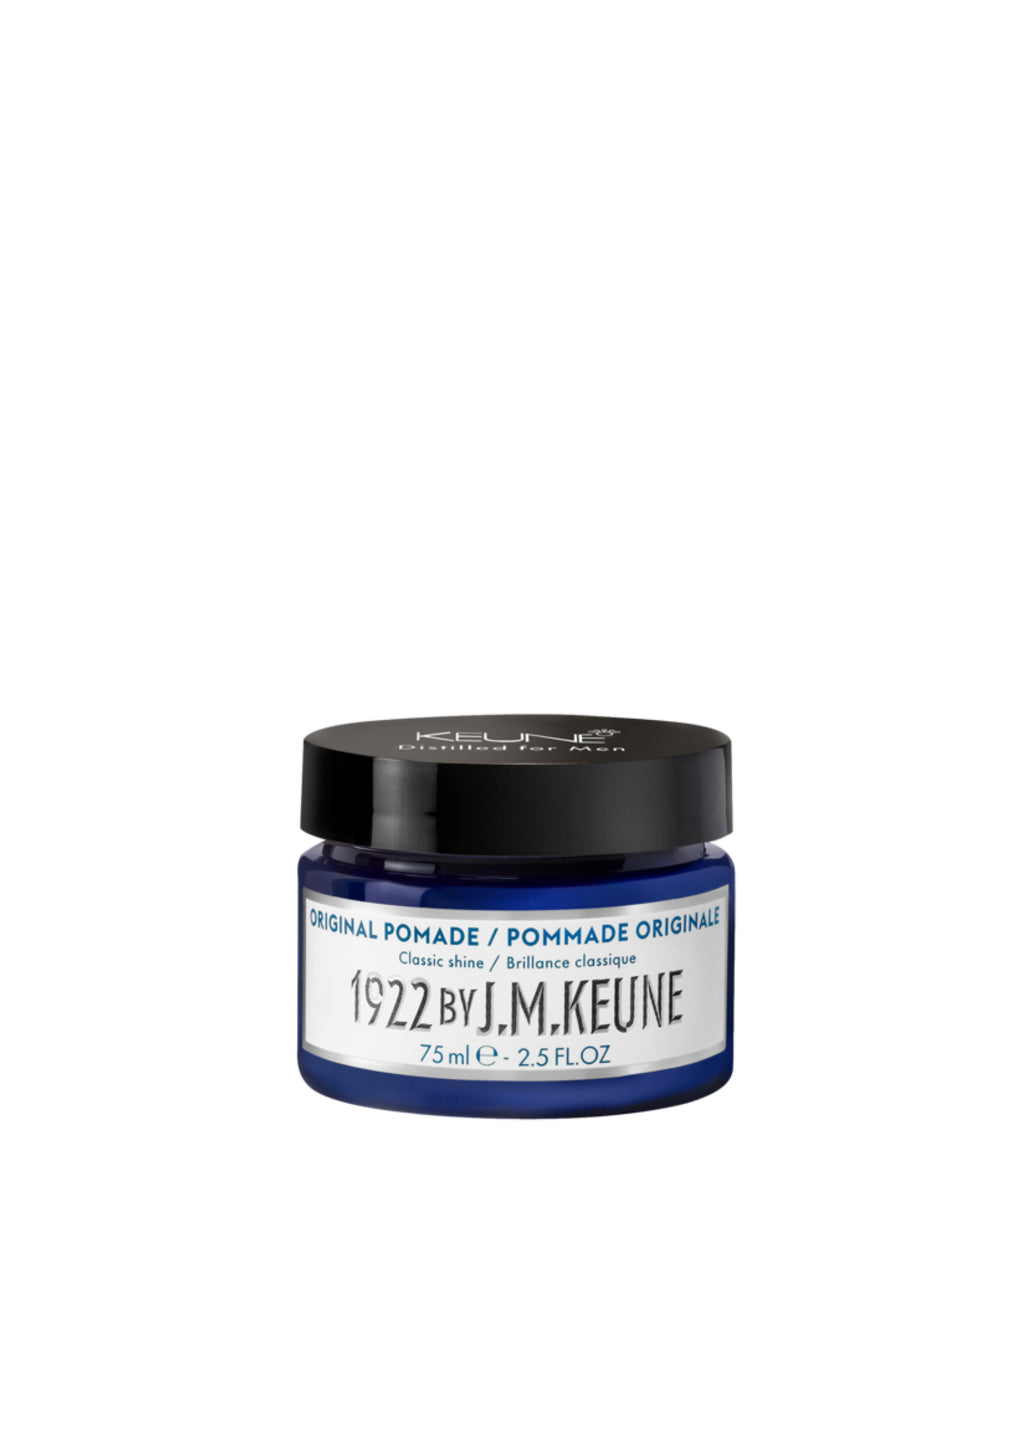 1922 ORIGINAL POMADE 75ML